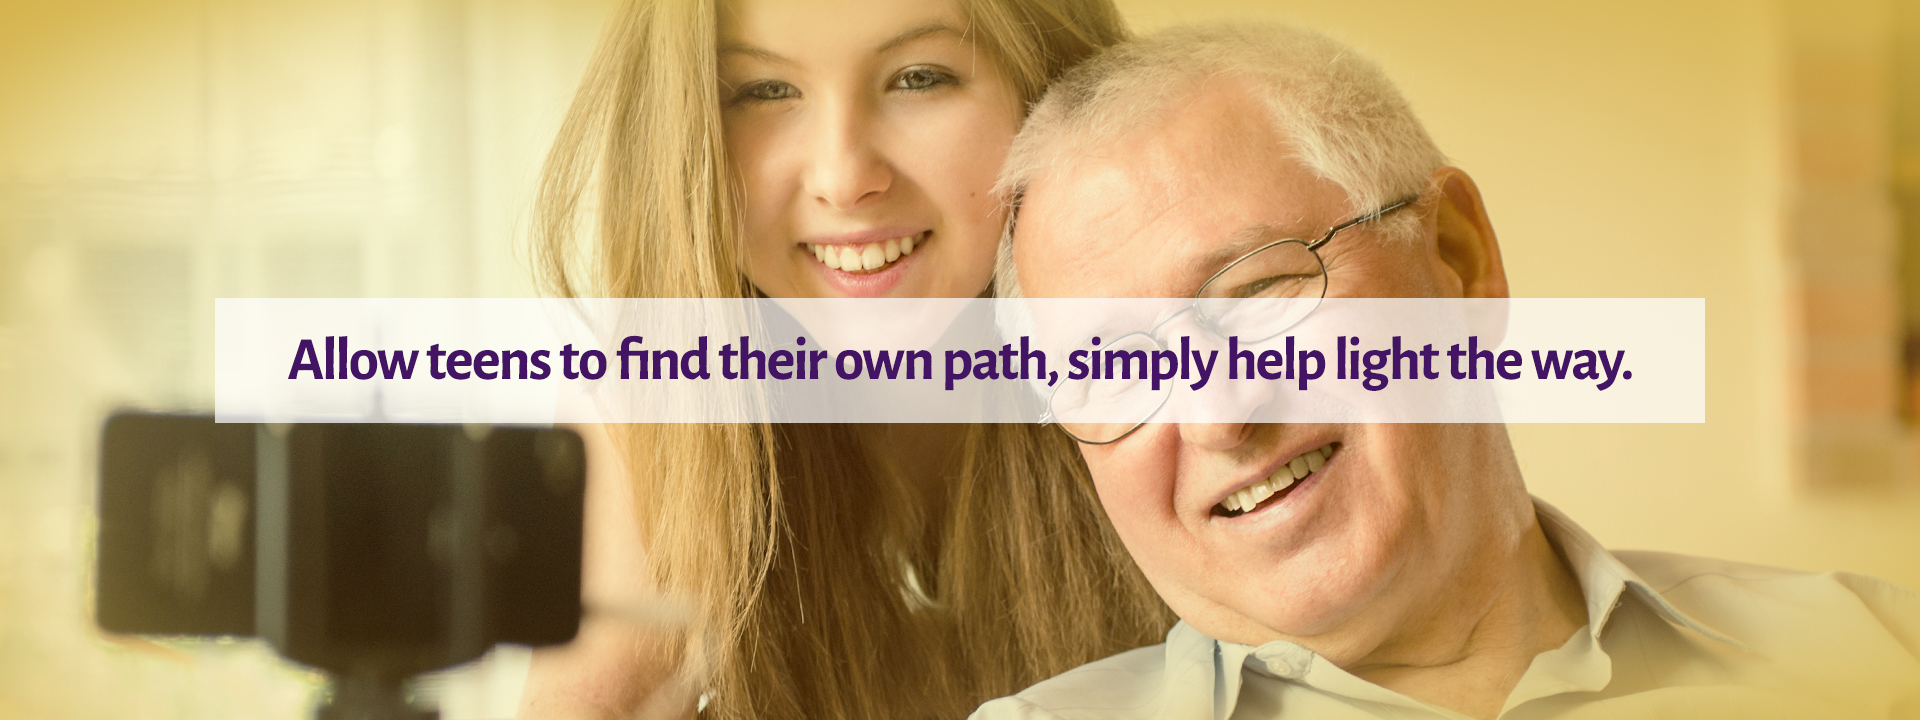 Allow teens to find their own path, simply help light the way.